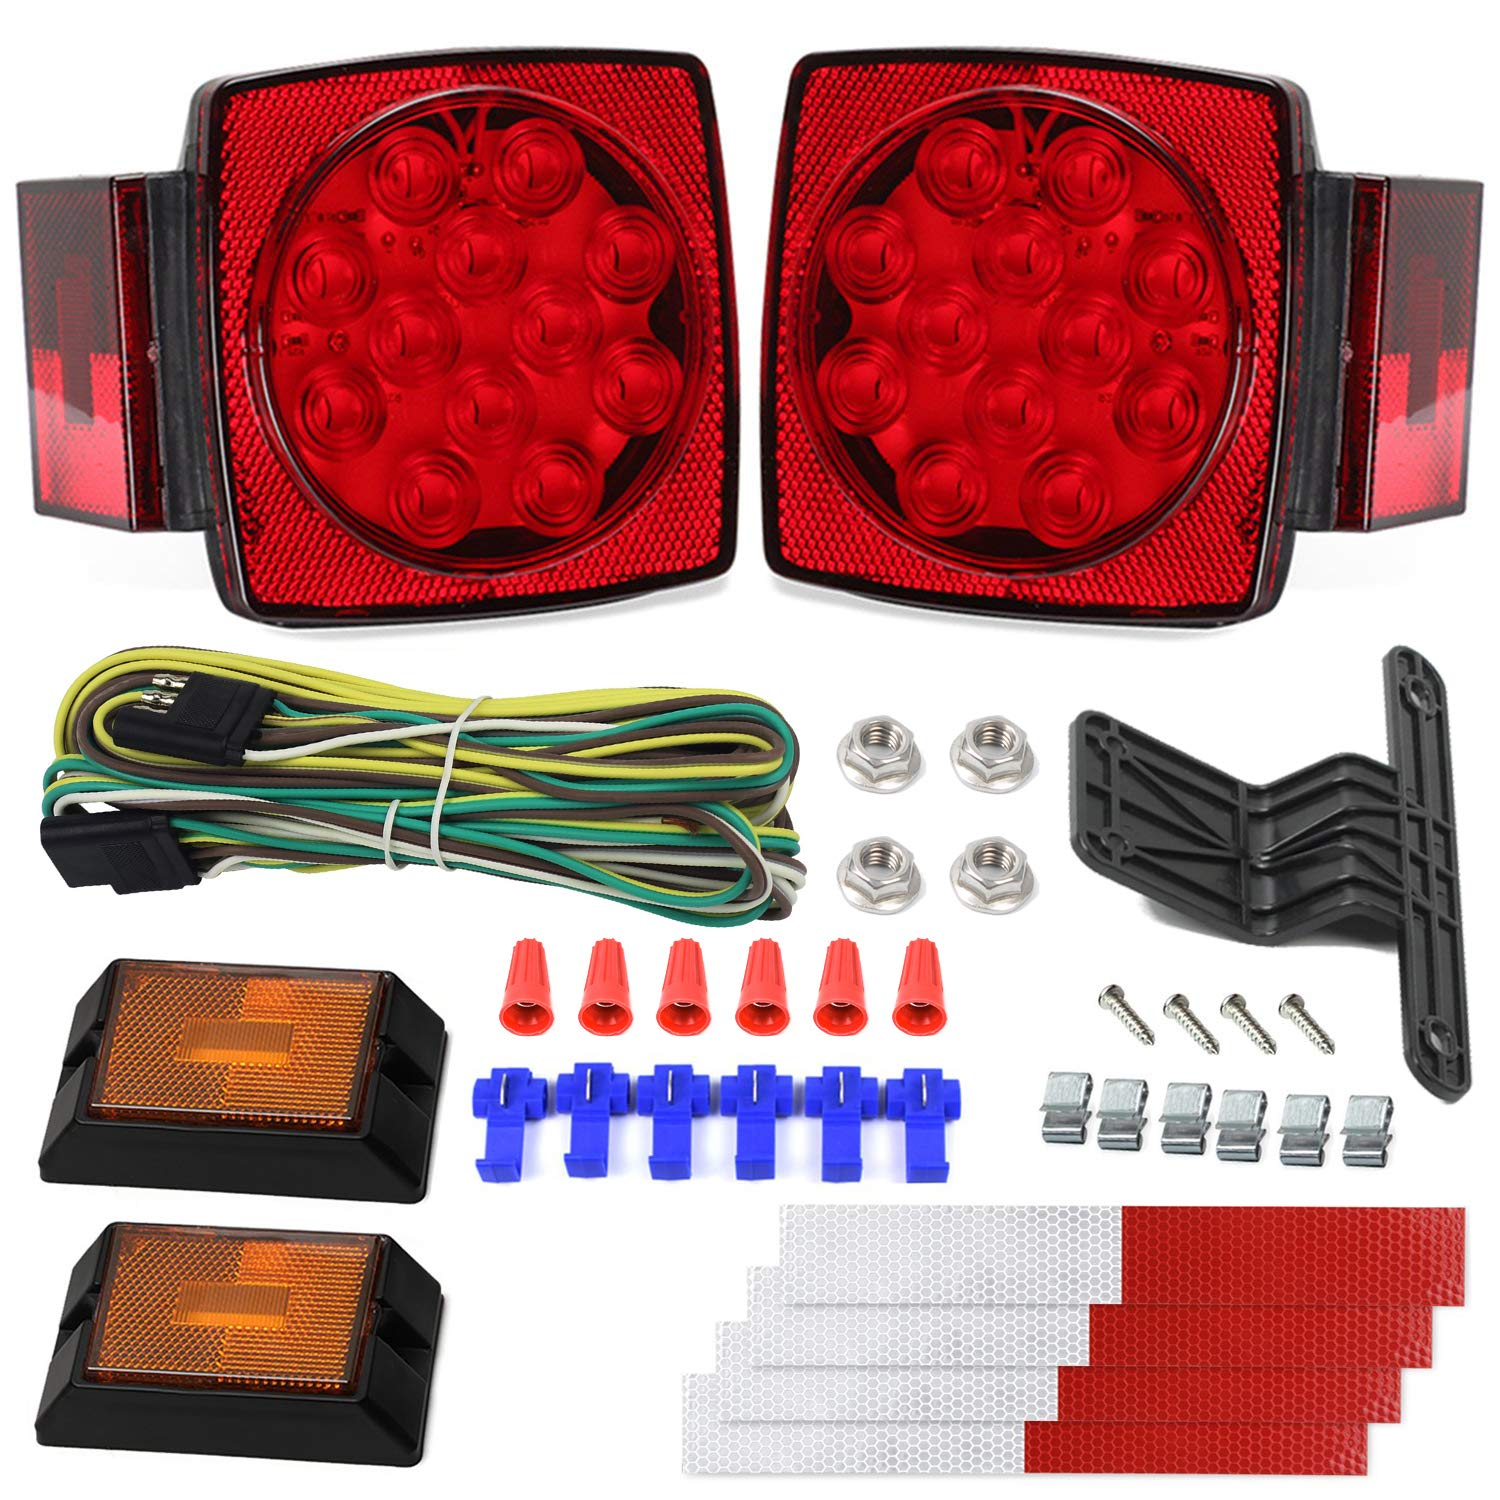 12V Trailer Light Kit DOT Certified Utility Trailer Lights for Boat RV Car Easy Assembly with Wire Harness Wafer LED 50,000H Lifespan Waterproof Durable All-in-one Tail Light Kit for Under 80 Inch DOT by Cyfie